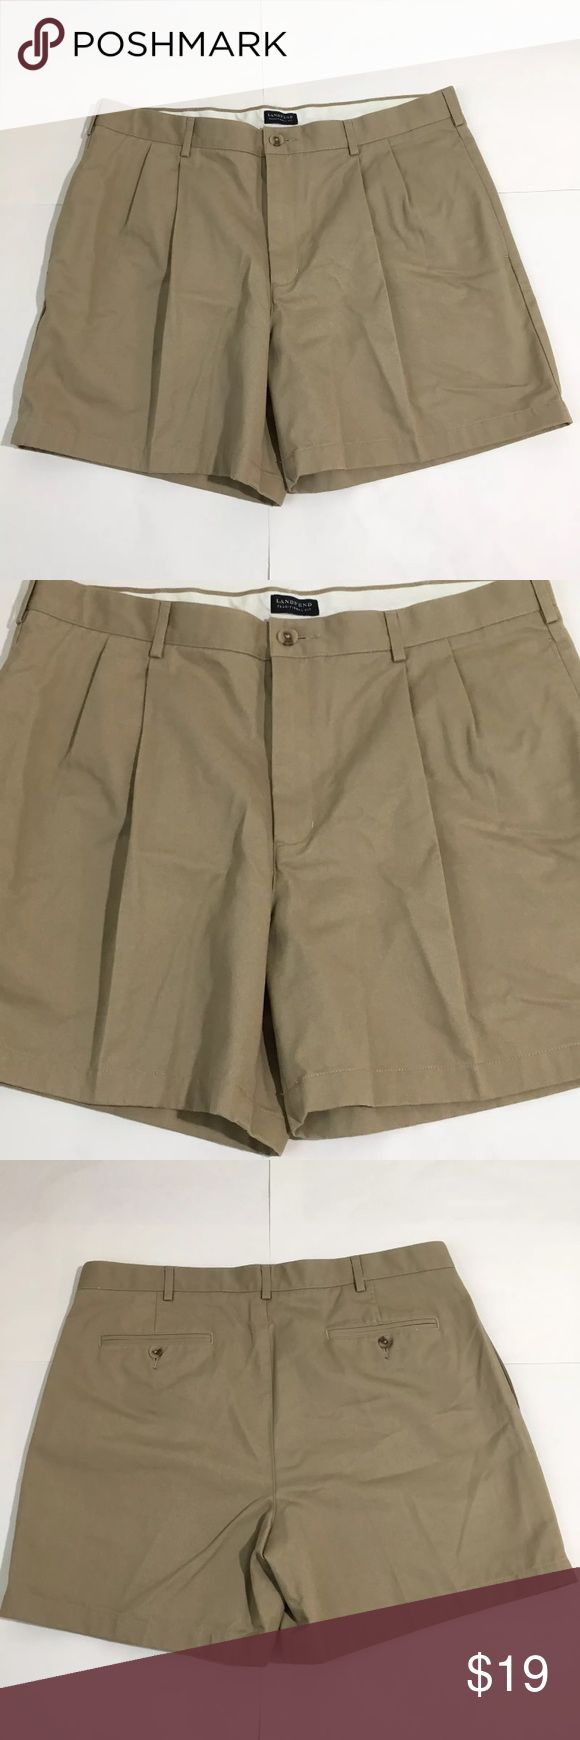 """Lands End Traditional Beige Chino Pleat Shorts 38 Men's Lands End traditional fit single pleat beige chino shorts. Size 38. 17.25"""" waist to hem. Perfect condition. Lands' End Shorts"""